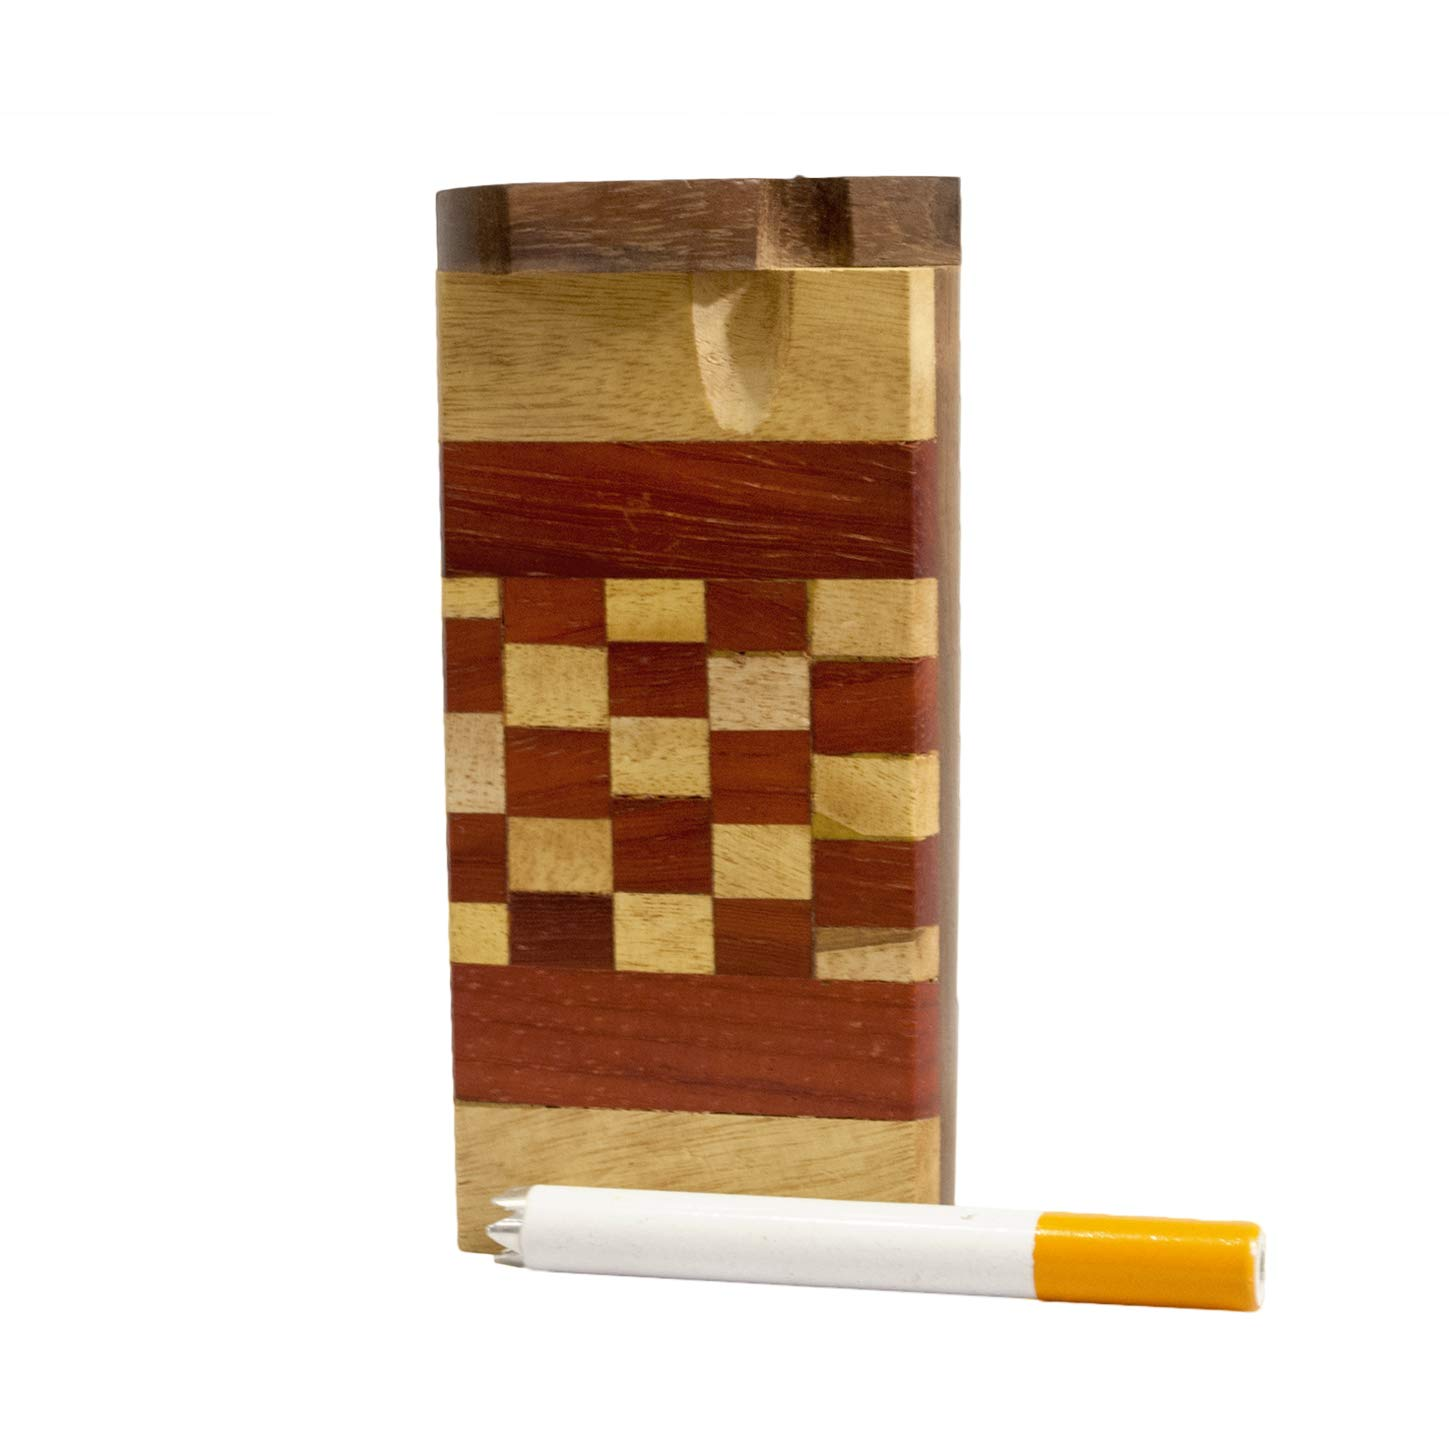 Handcrafted Wooden Cigarette Holder | Unique Woodgrain Pattern |''Bobby Fischer'' Design